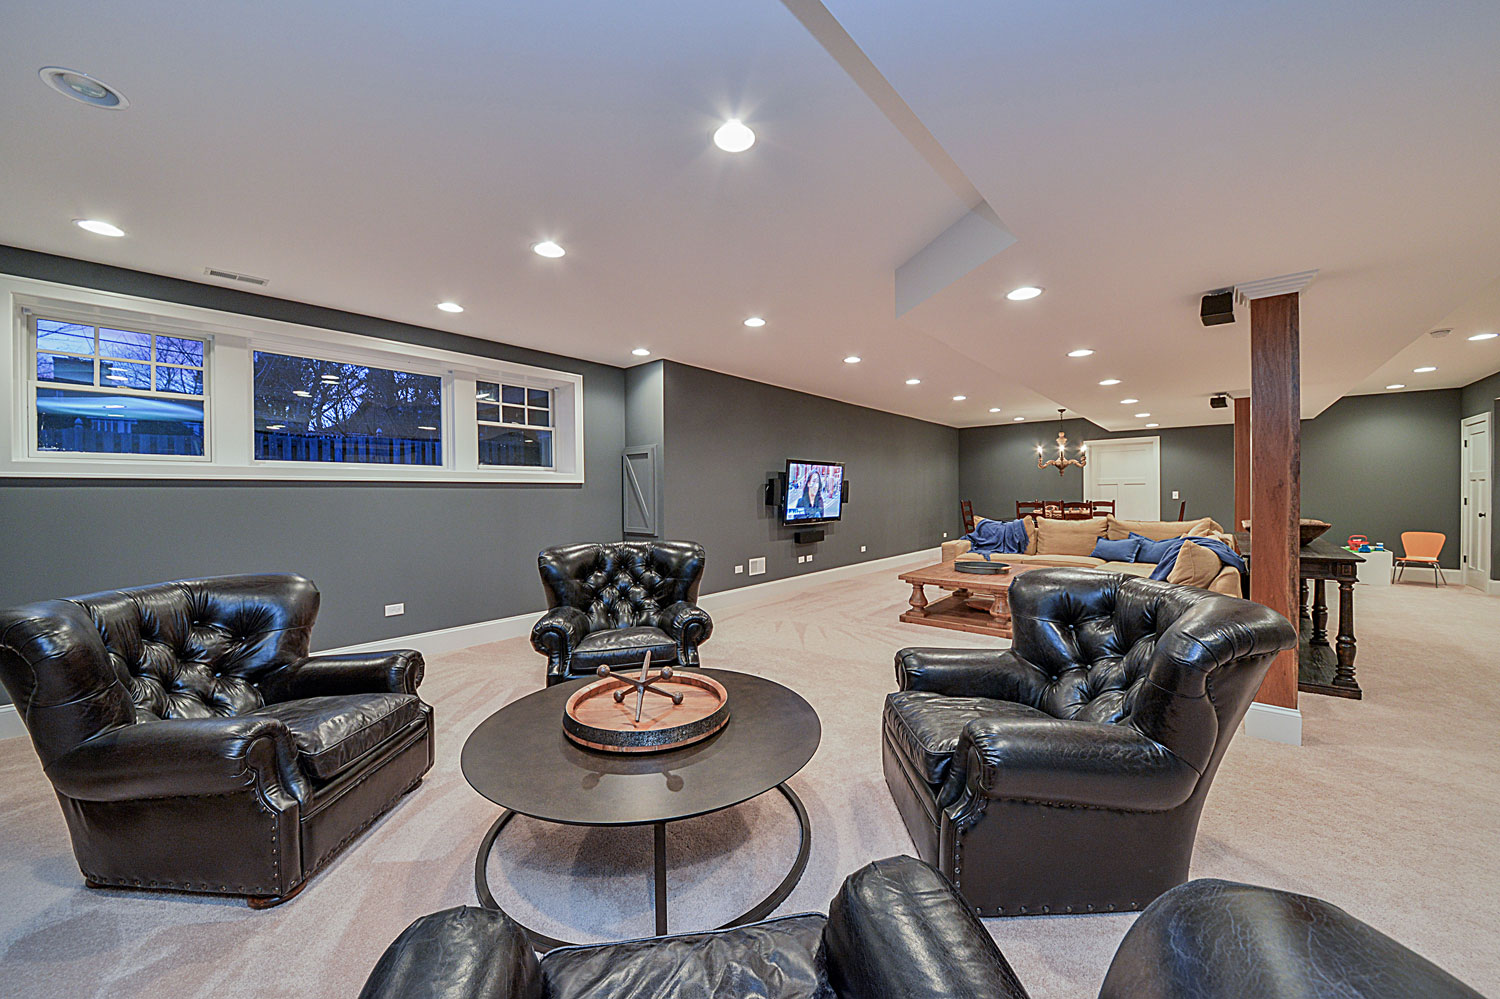 ... Custom Wet Bar Pool Table Finished Basement Remodeling Ideas Wheaton  Sebring Services ...